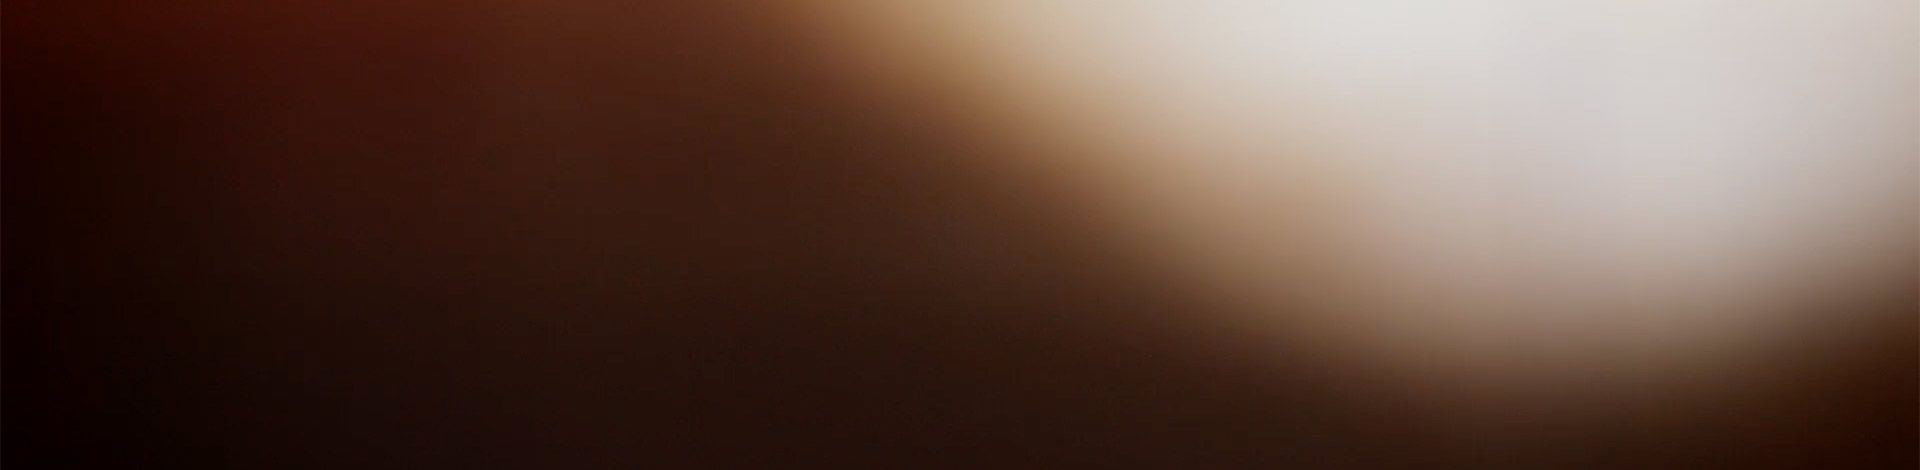 Oasis-banner1